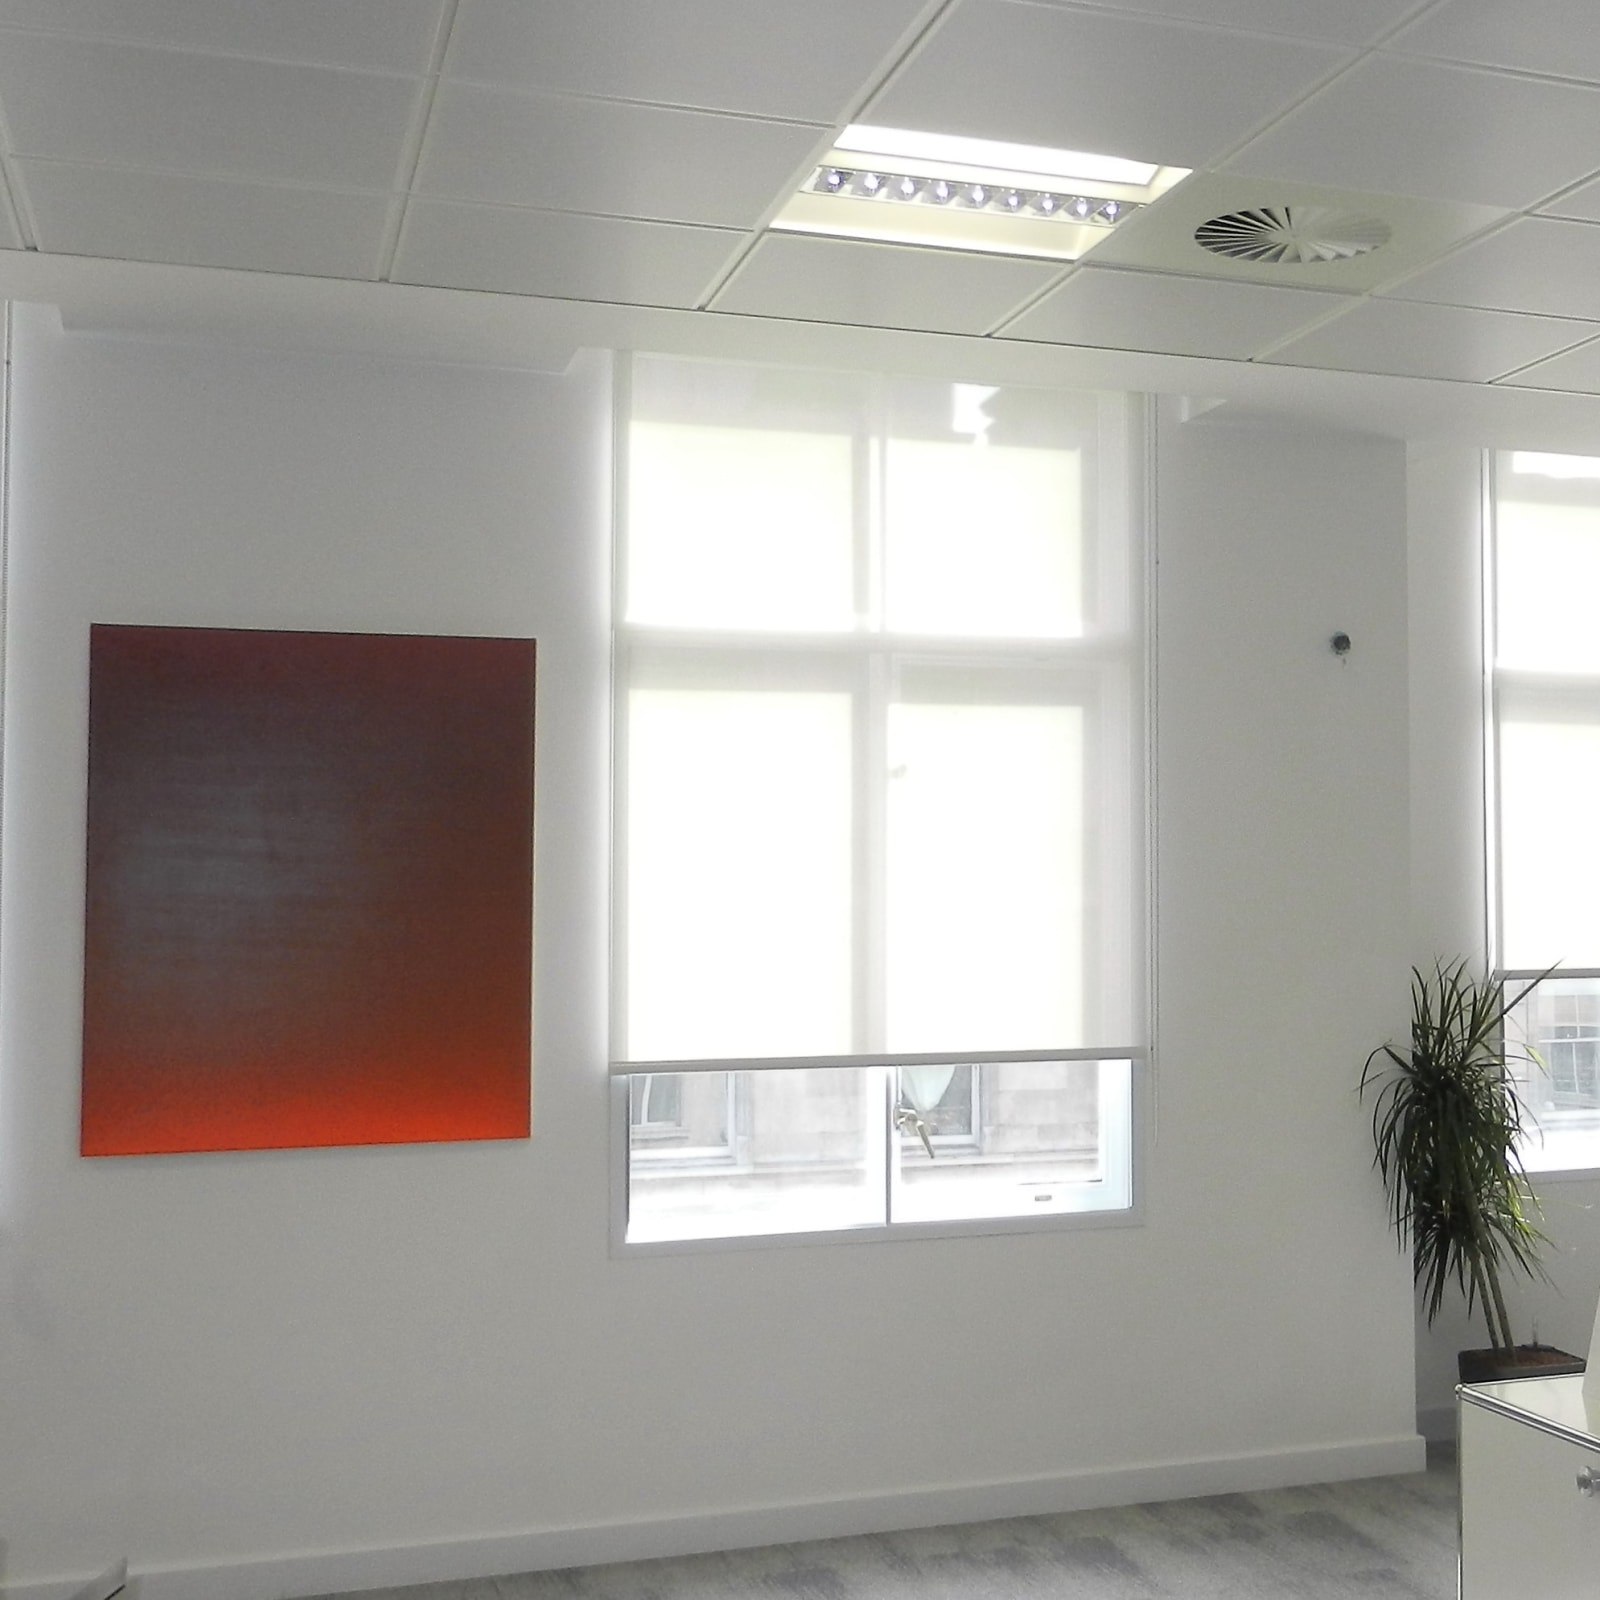 Michael Luther From Orange to Red, Private Office, London